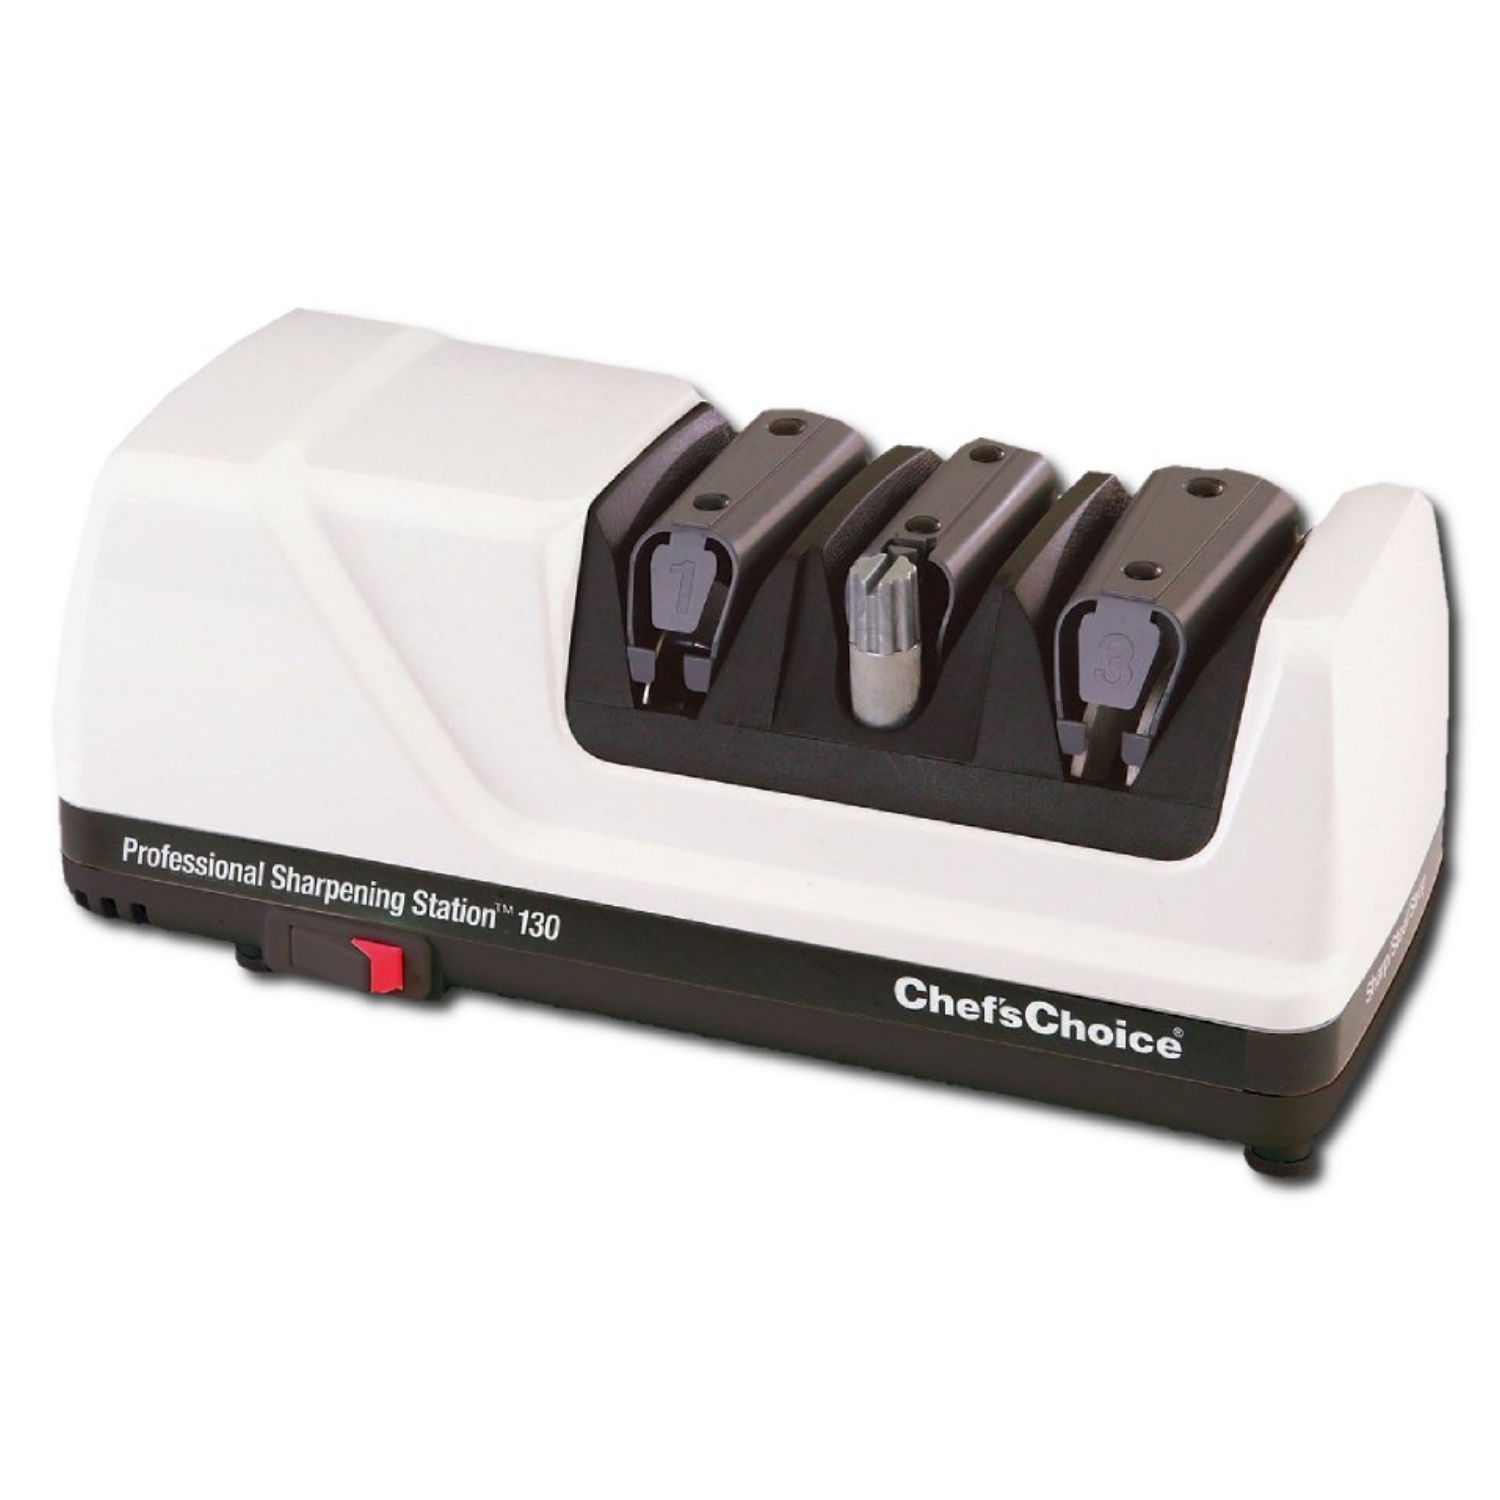 Chefs Choice, Brousek na nože Professional Sharpening Station® CC-130